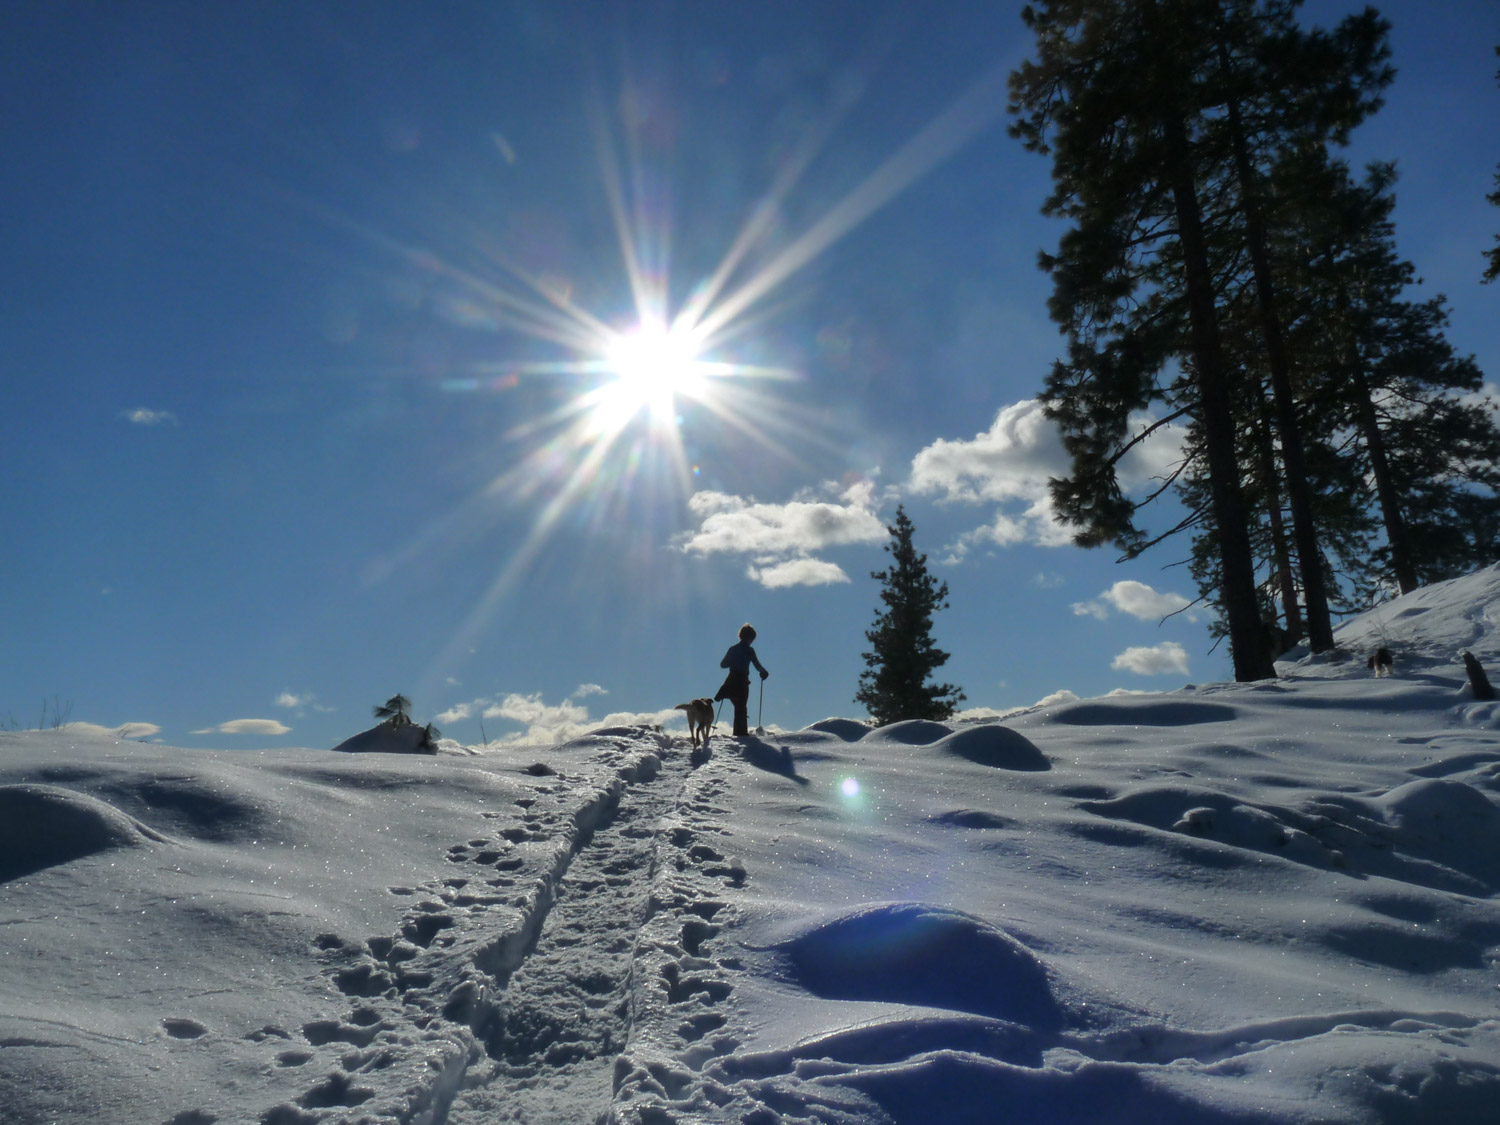 Millie...your snowshoe trail guide